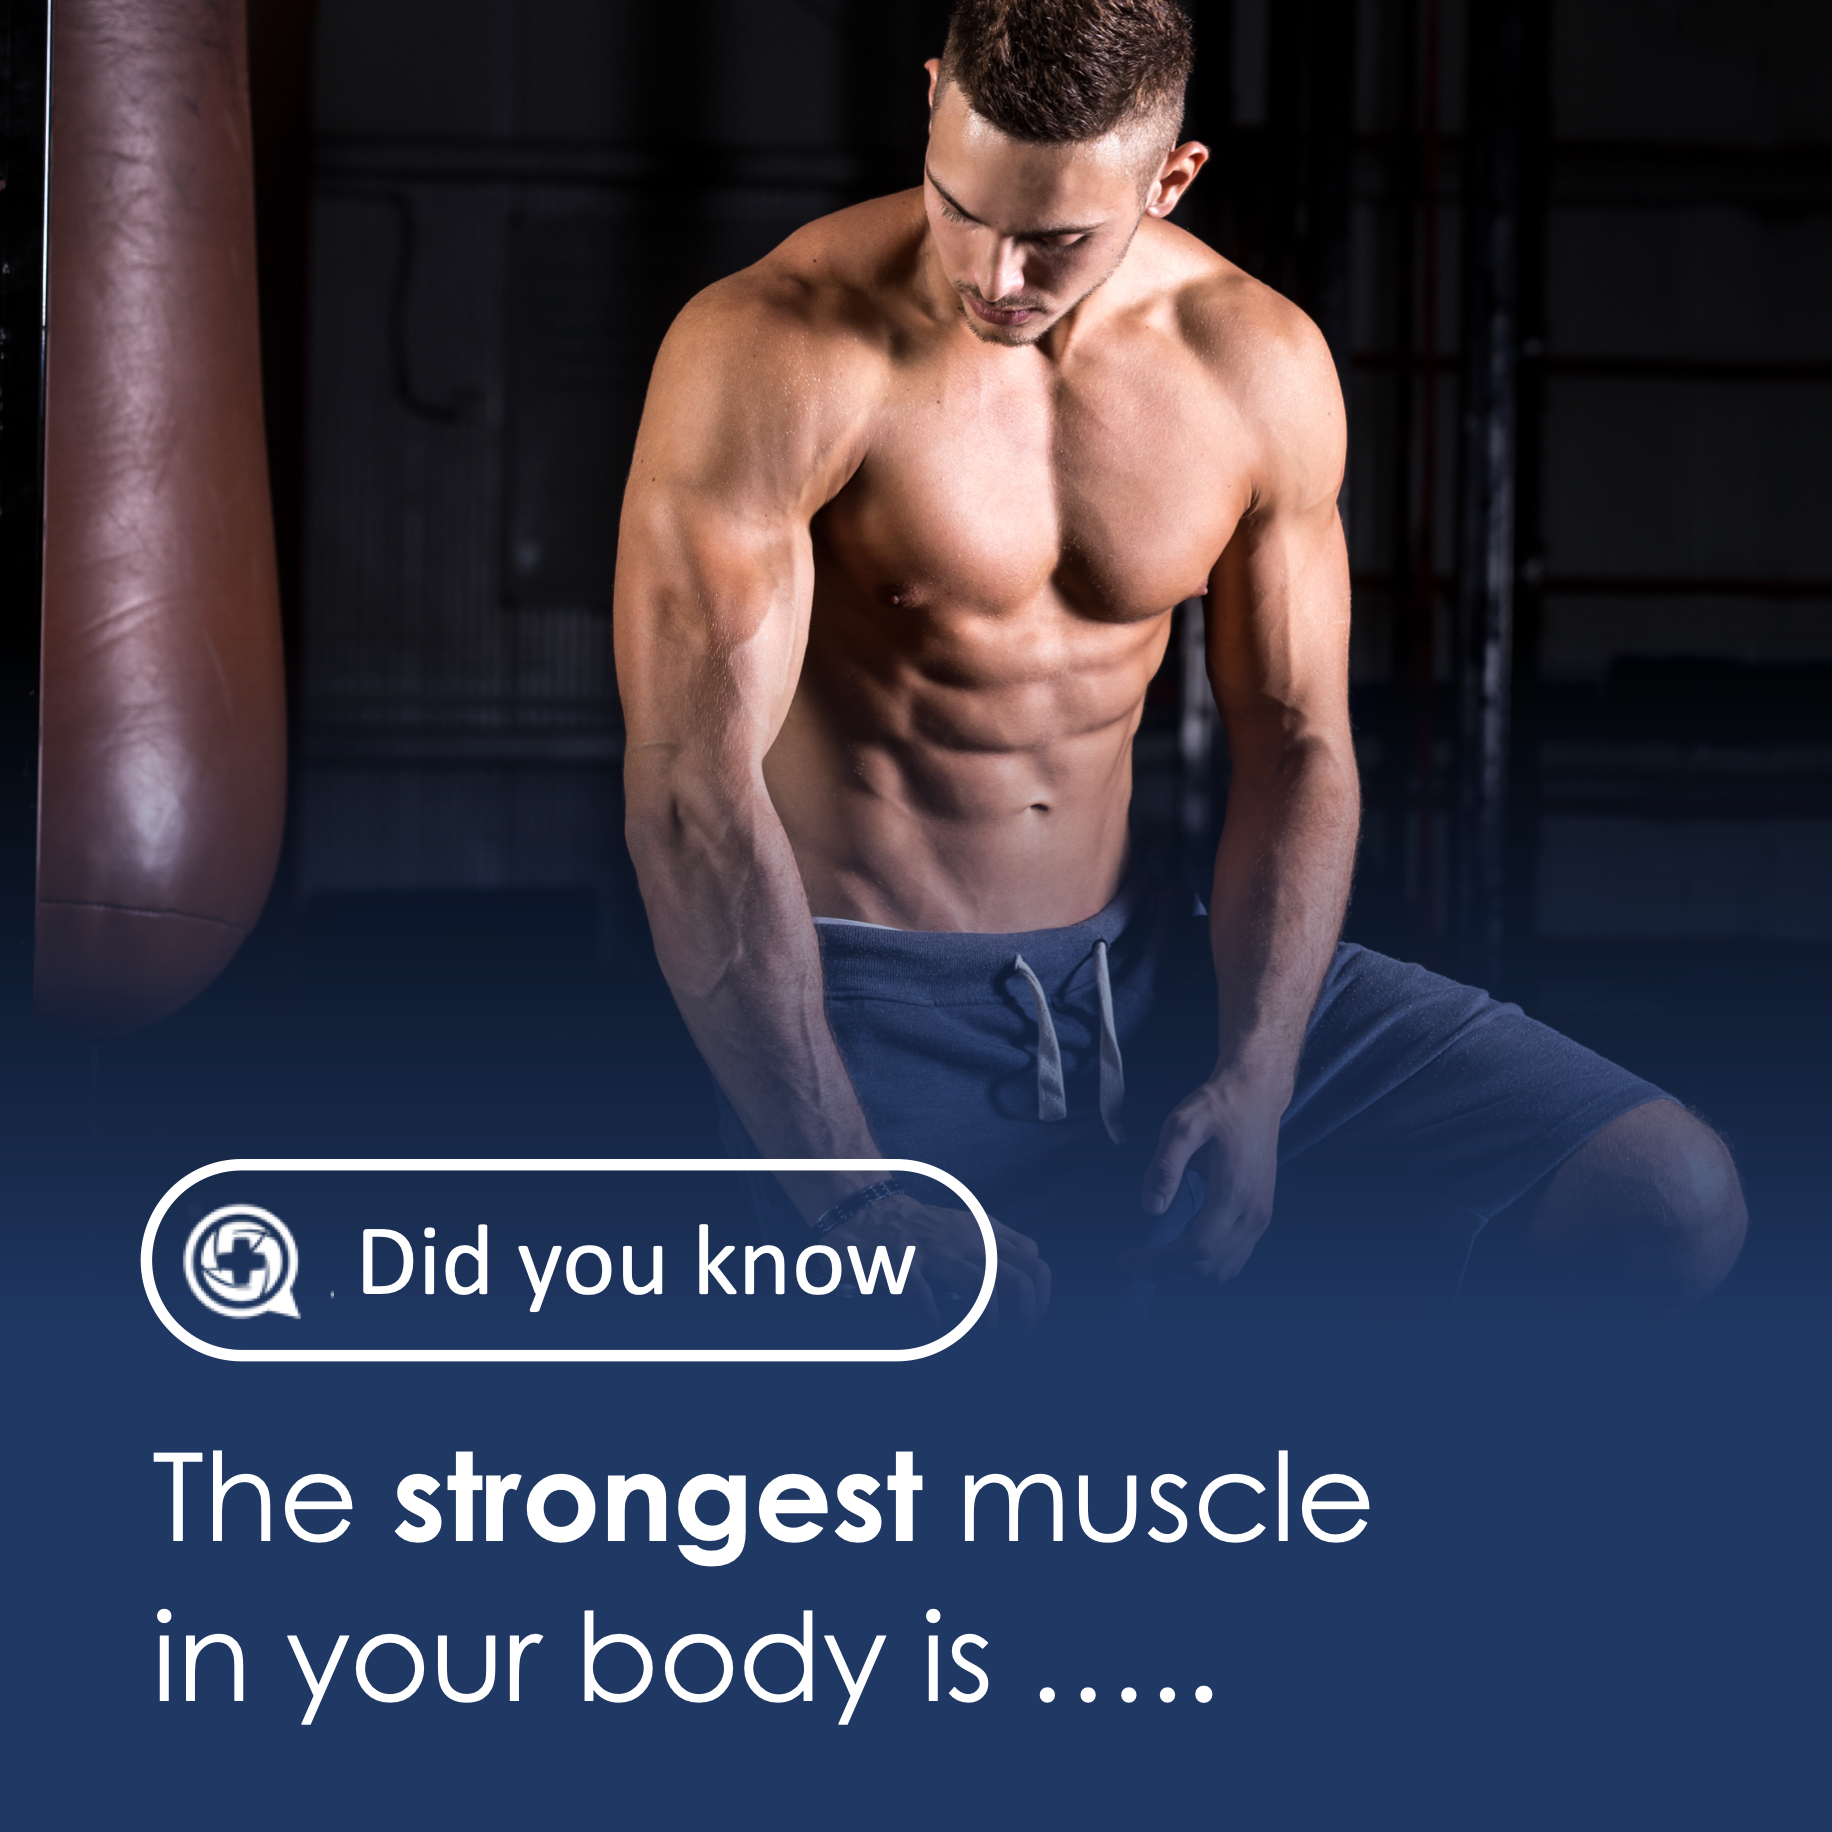 What is strongest muscle in the body